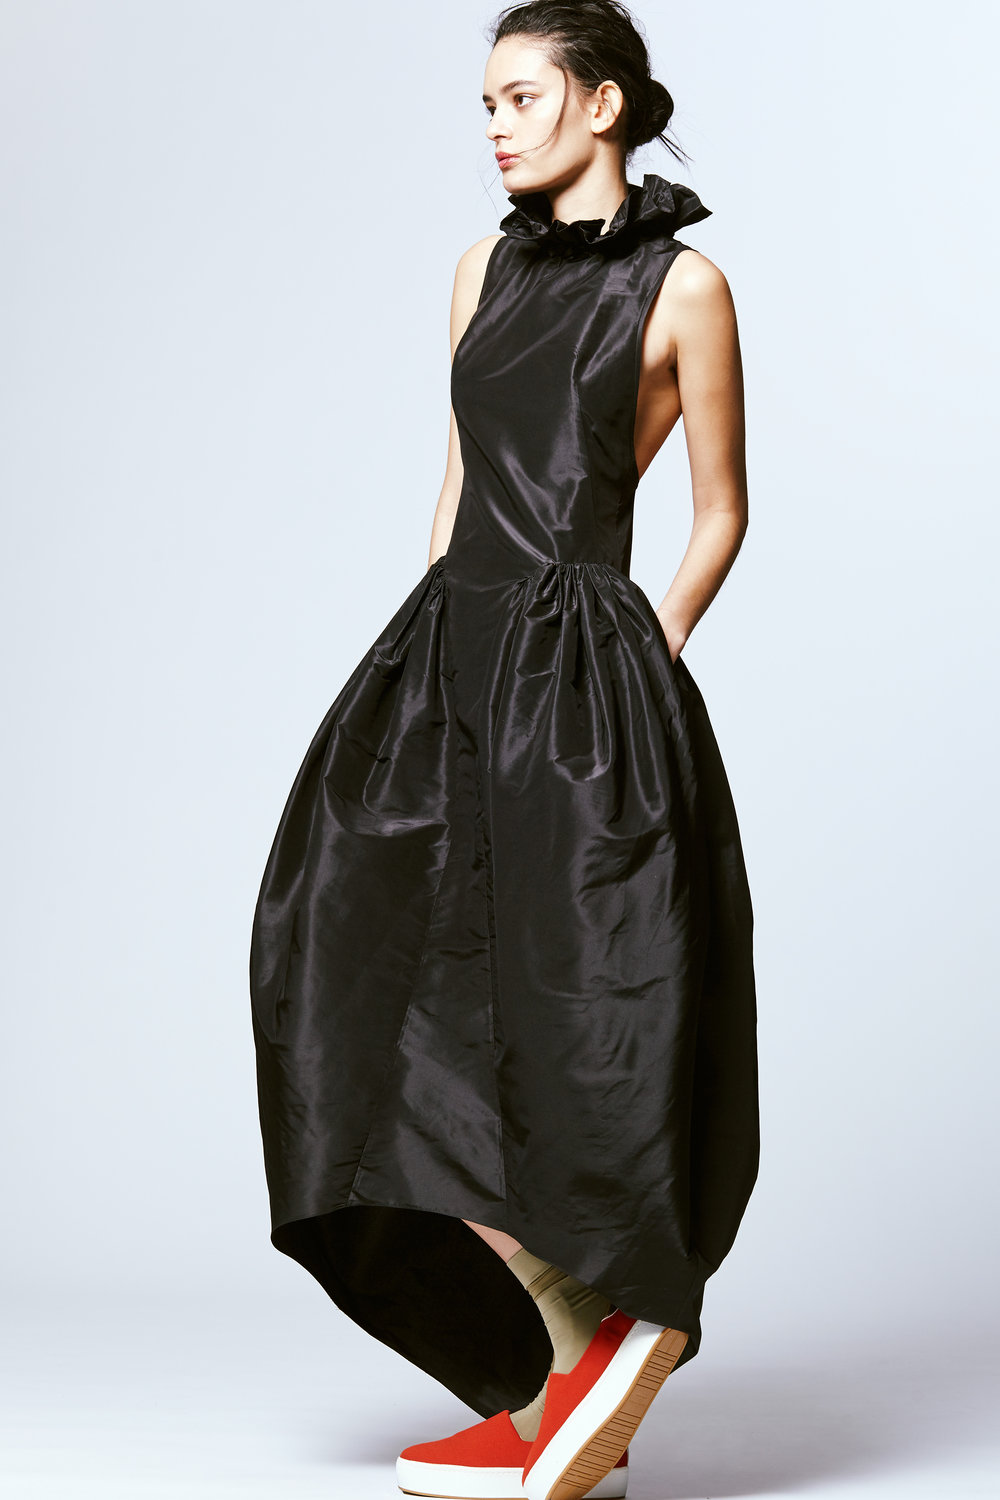 KELSEY RANDALL - shop all collections - collection II - black silk ...